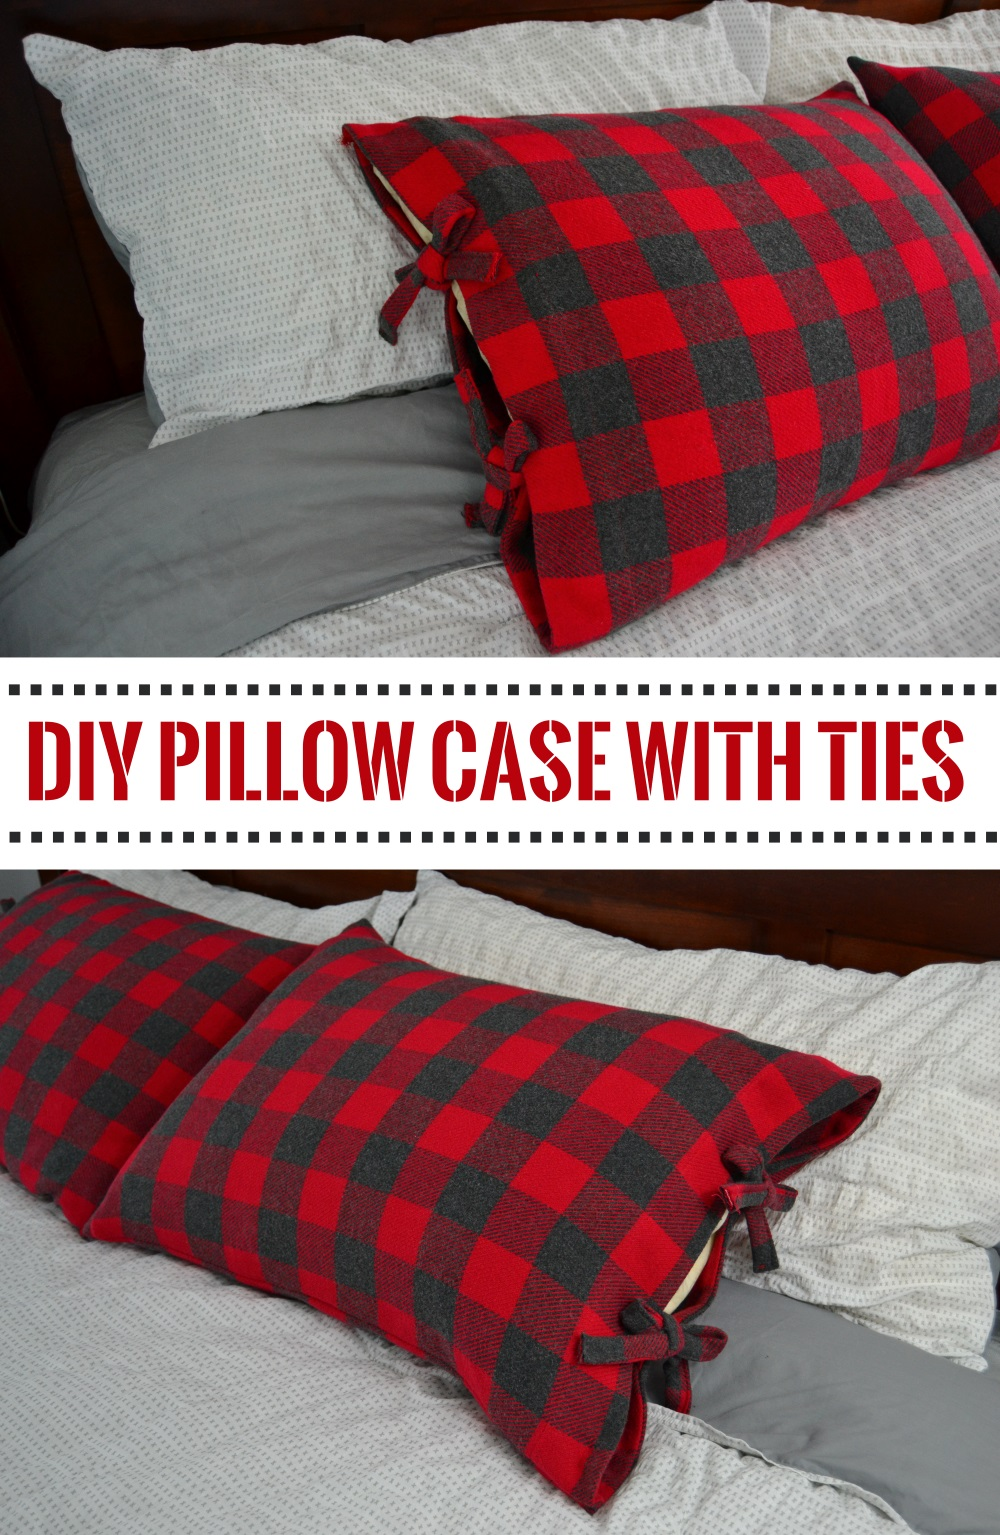 DIY Pillowcases - Bed Pillowcases With Ties - Easy Sewing Projects for Pillows - Bedroom and Home Decor Ideas - Sewing Patterns and Tutorials - No Sew Ideas - DIY Projects and Crafts for Women #sewing #diydecor #pillows